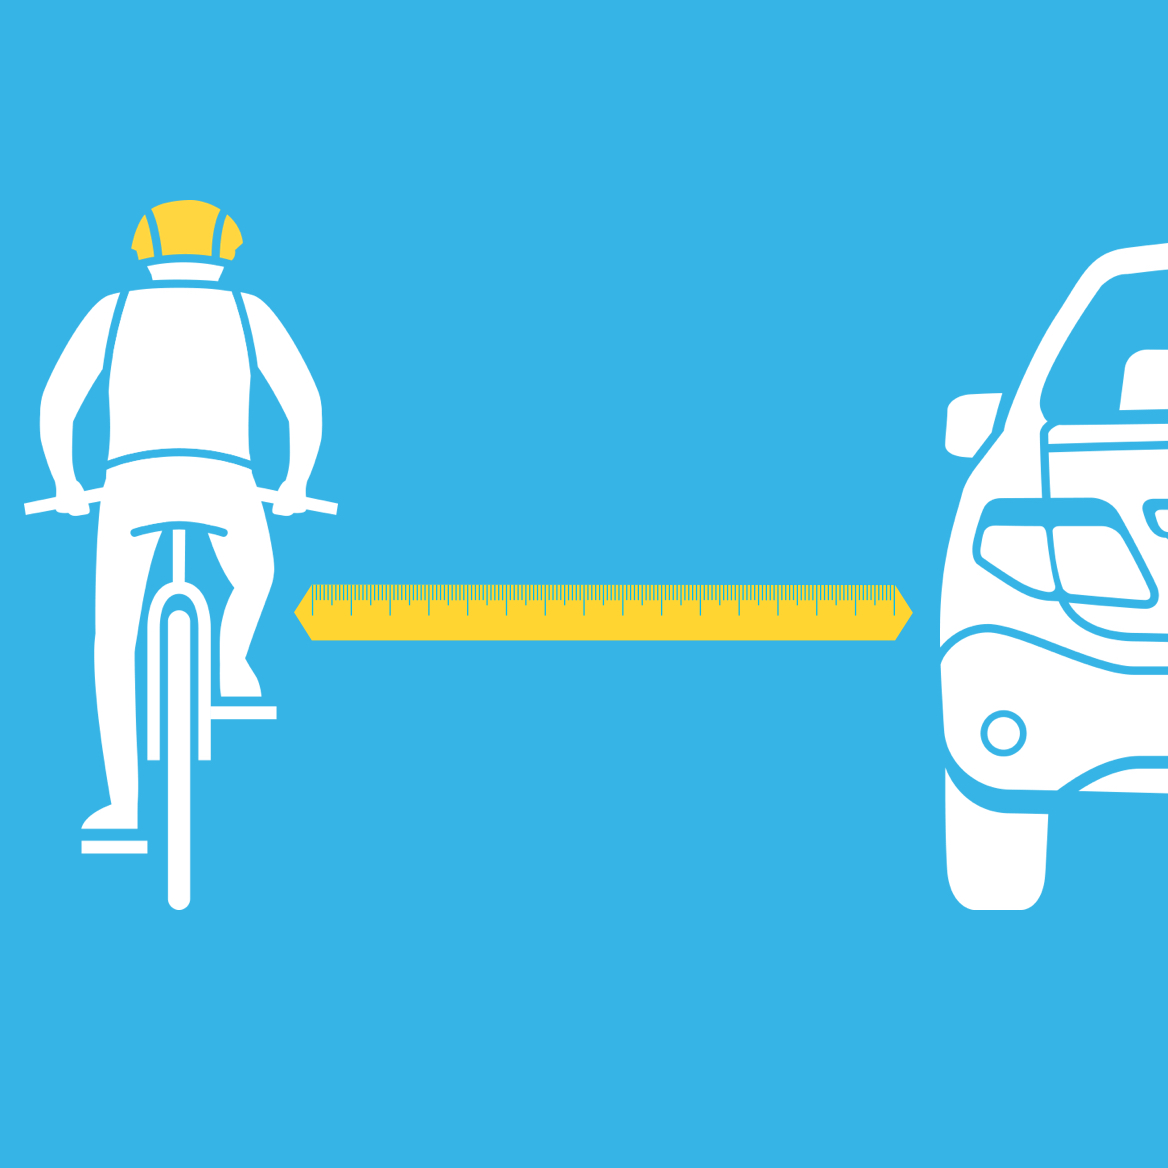 Animation style image depicting a car passing a bicycle rider at 1 metre.